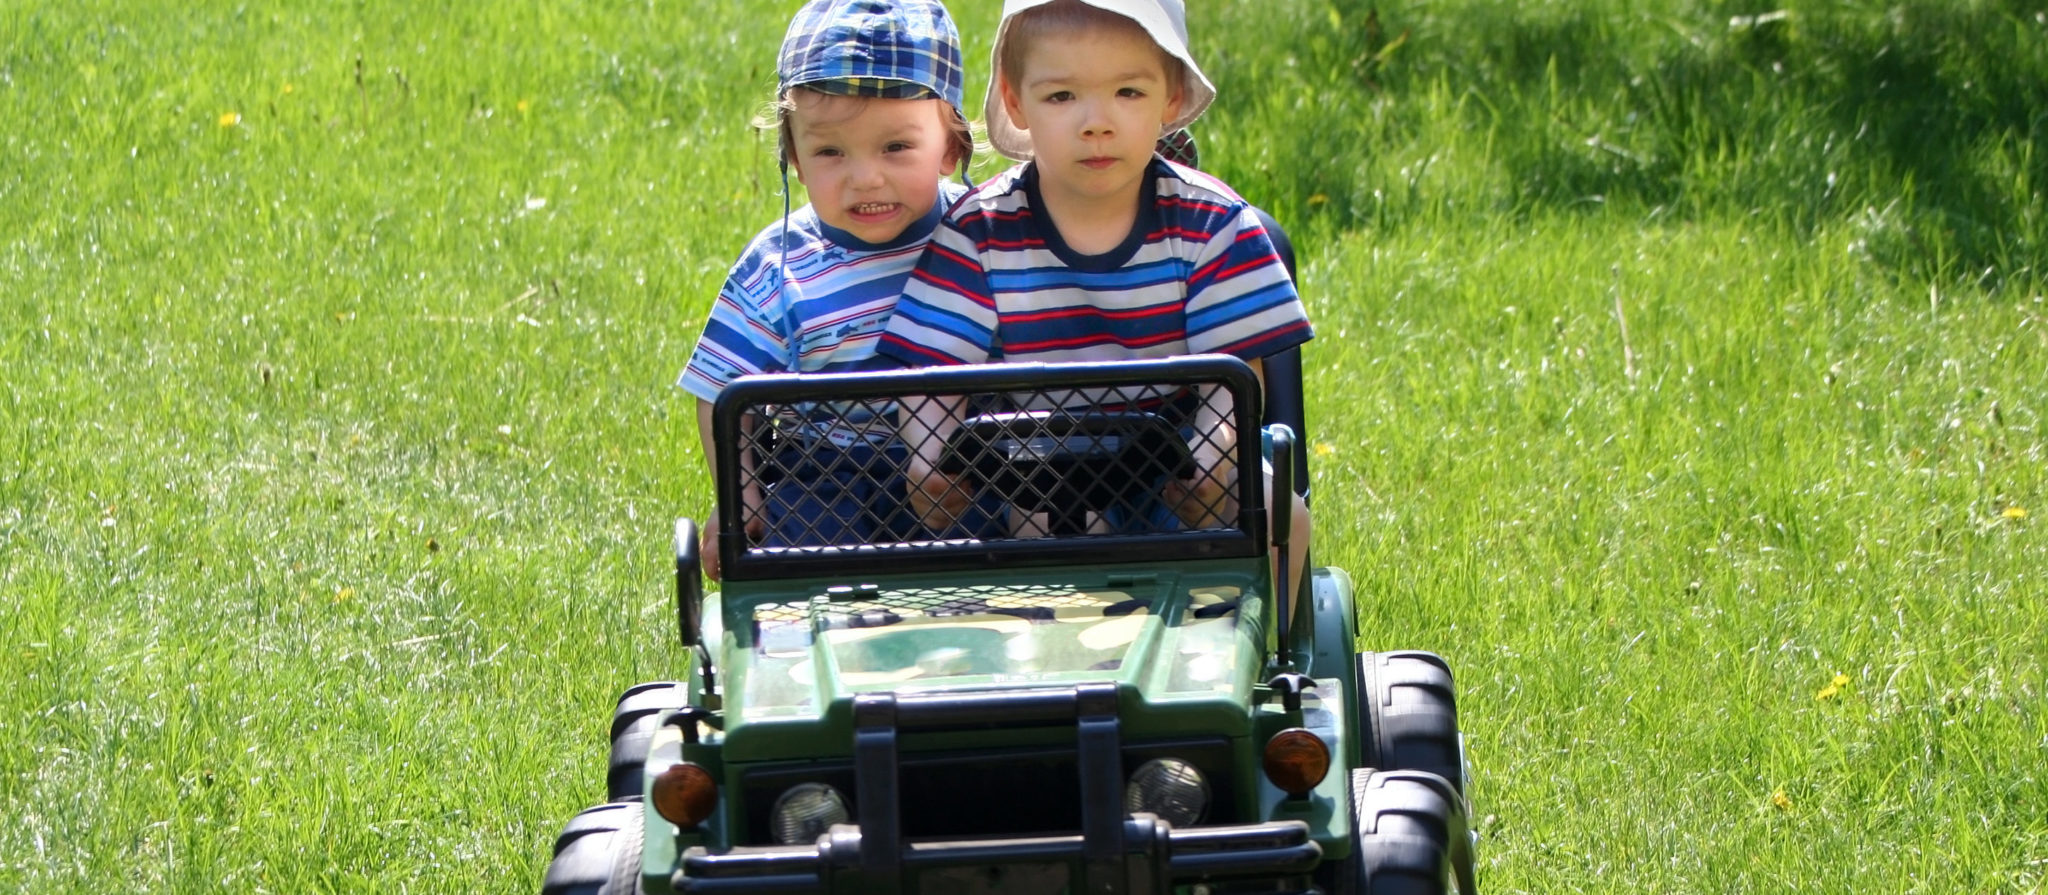 The Power Wheels Jeep 2 Seater is a sick outdoor ride on toy for kids!